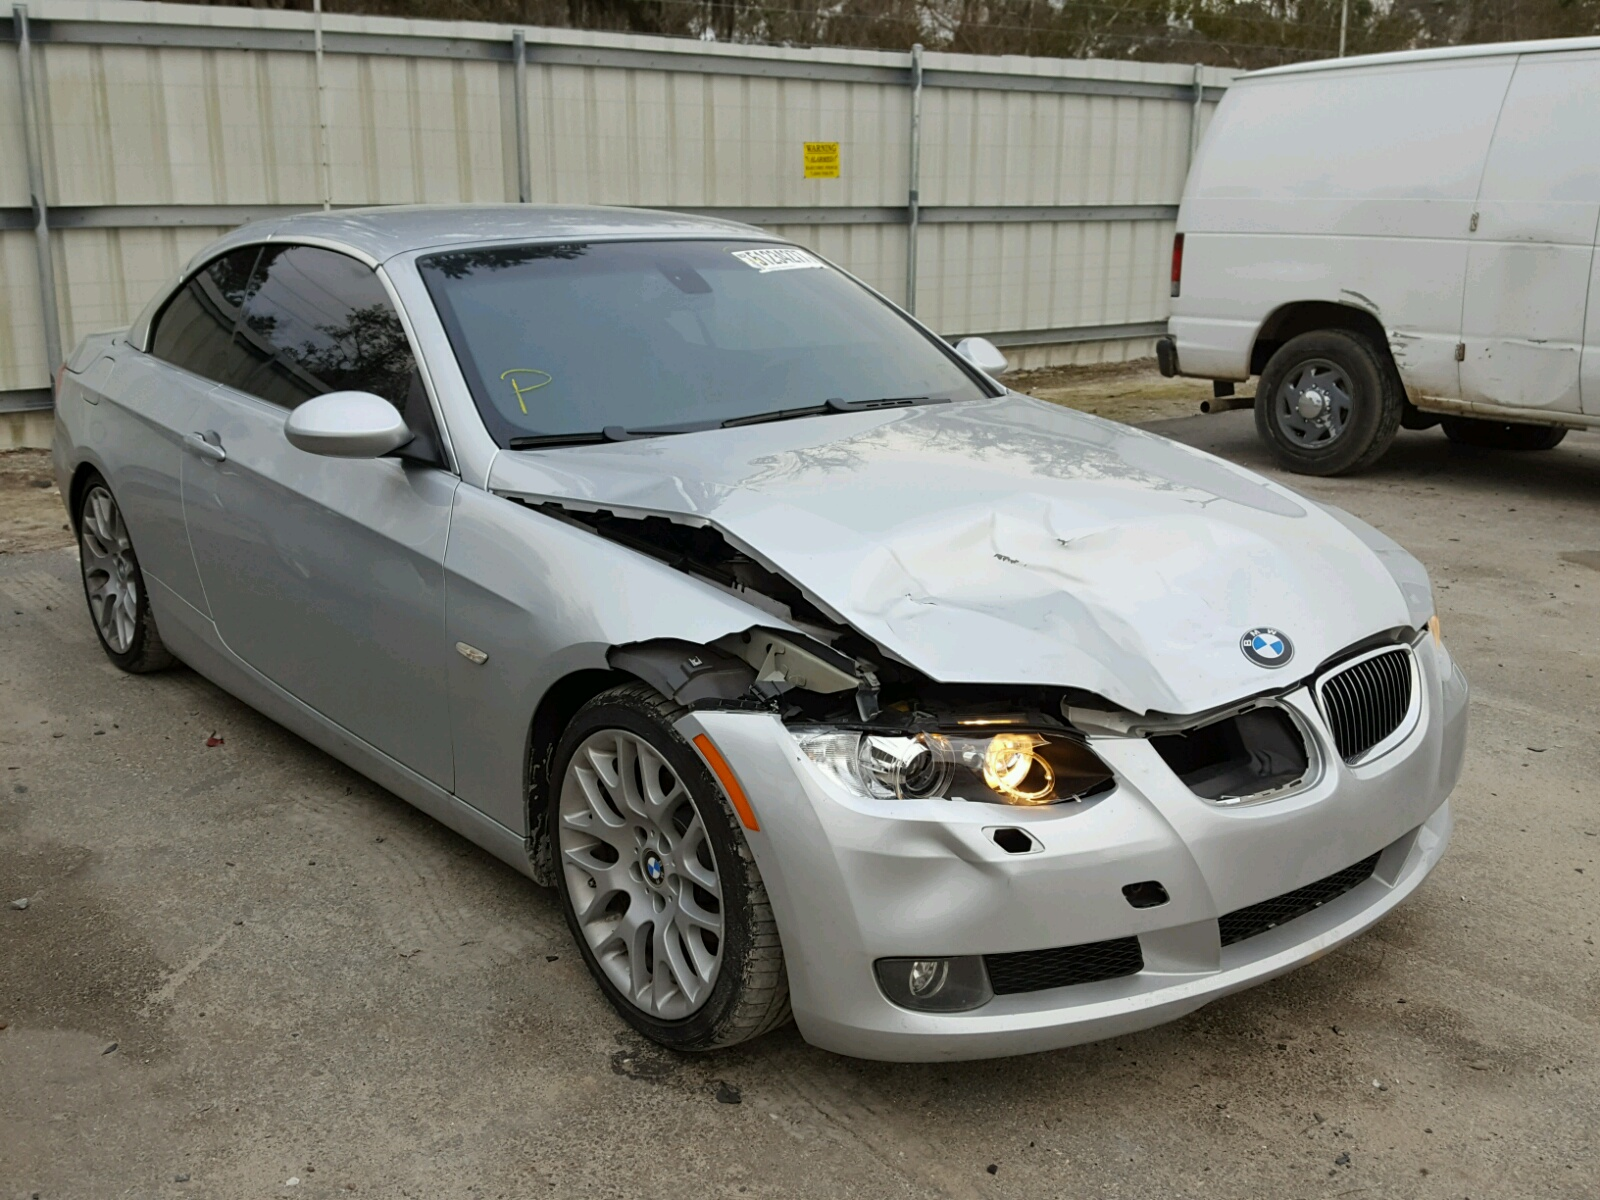 Auto Auction Ended On Vin Wbawb33587pv70369 2007 Bmw 328